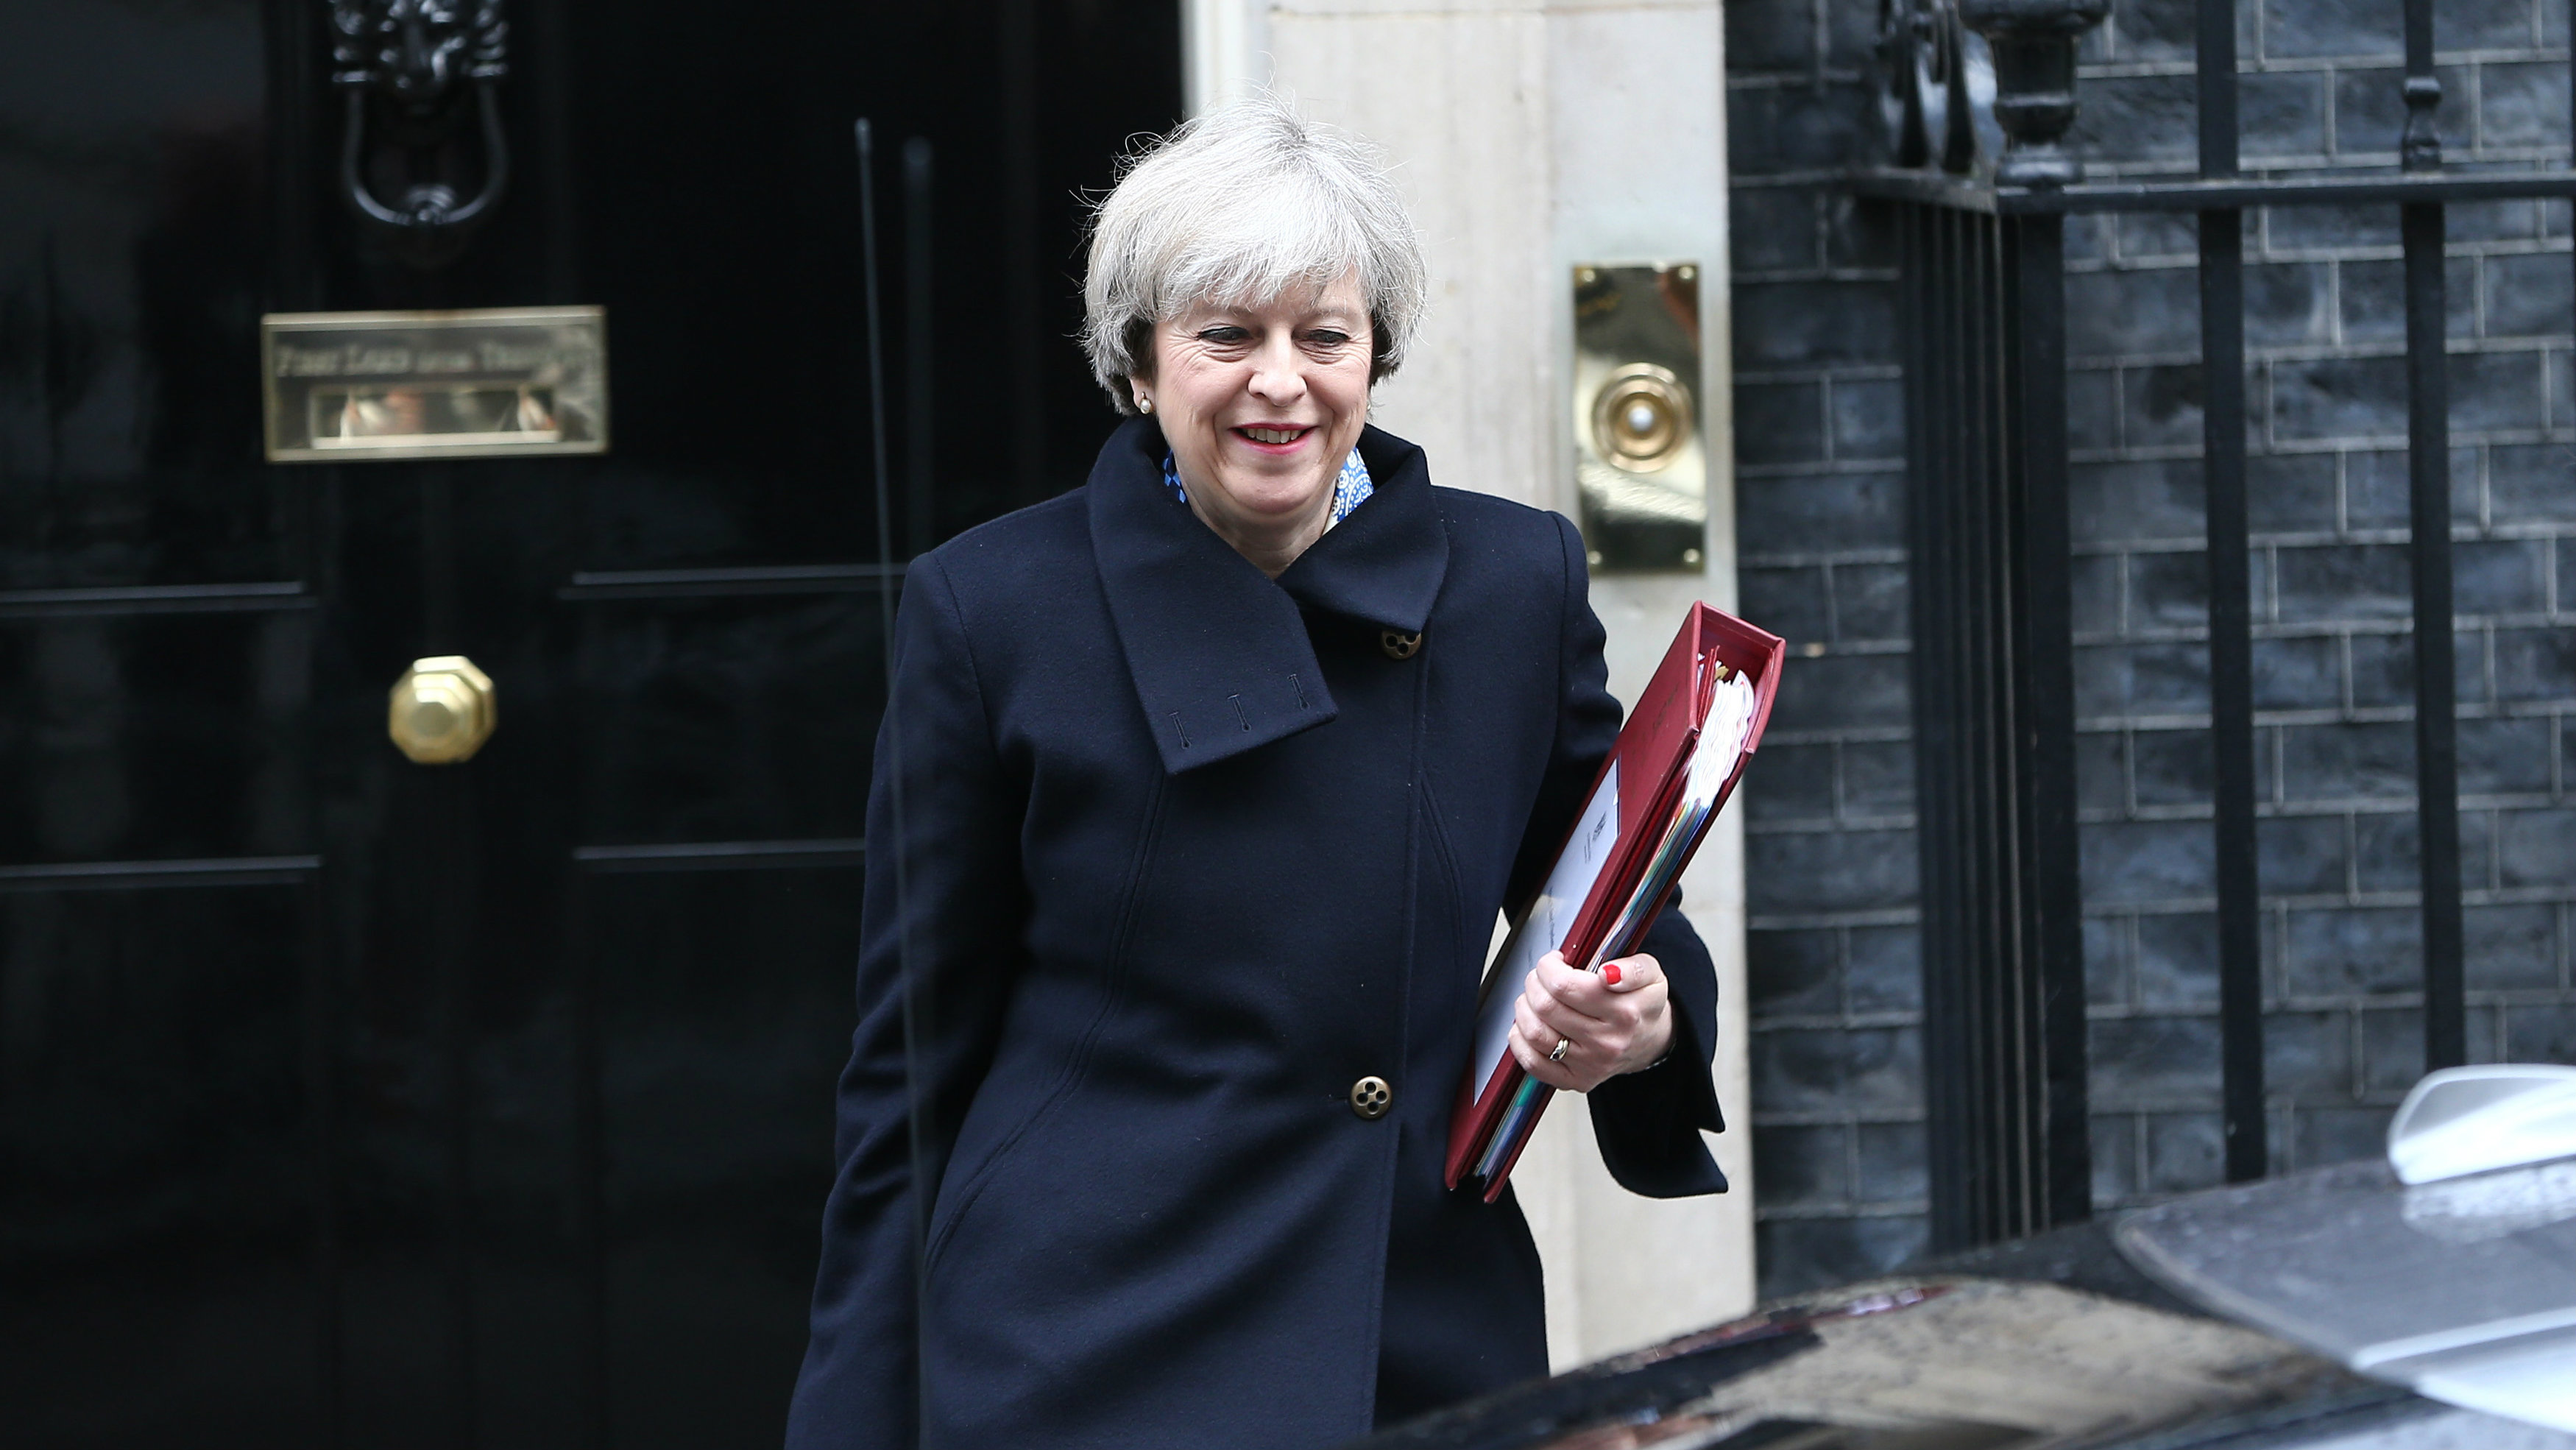 Britain's Prime Minister Theresa May leaves Downing Street in London